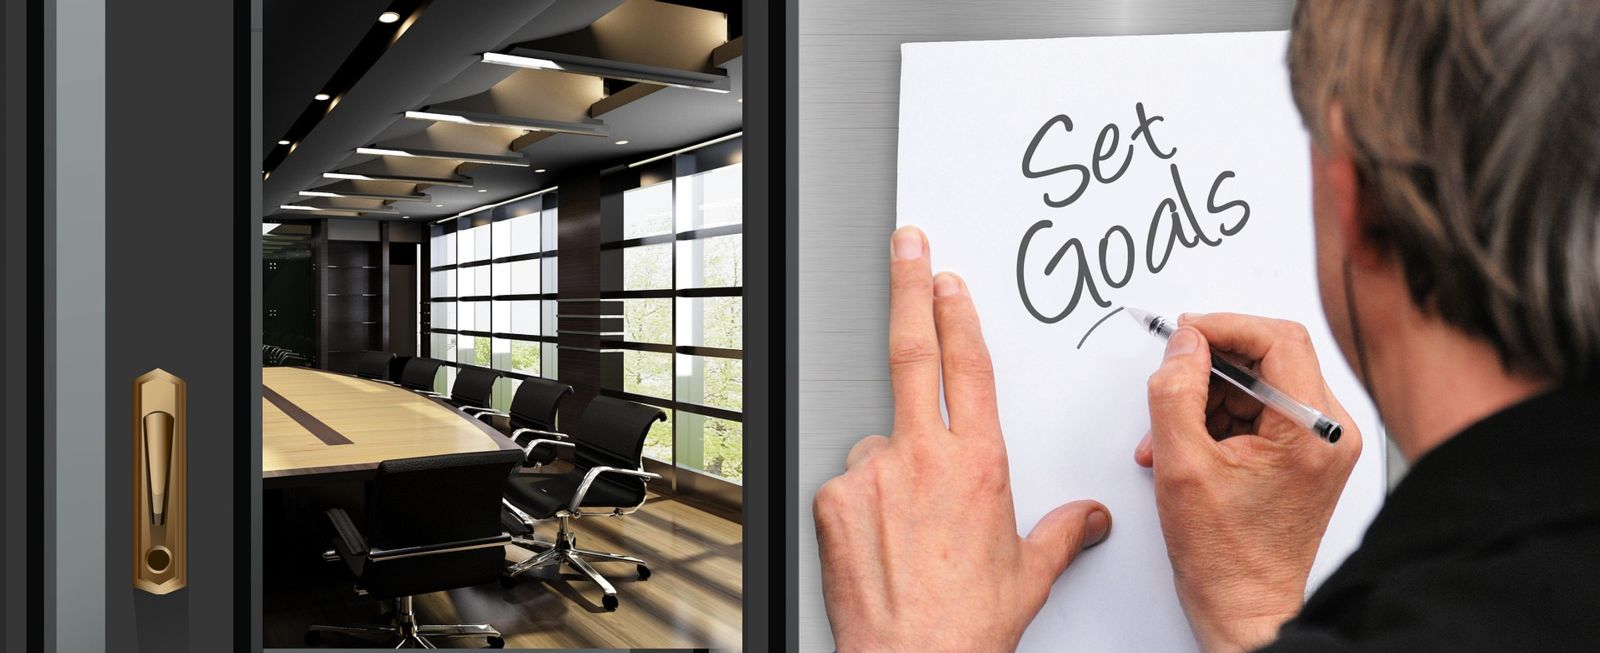 view into a conference room with man writing Set Goals